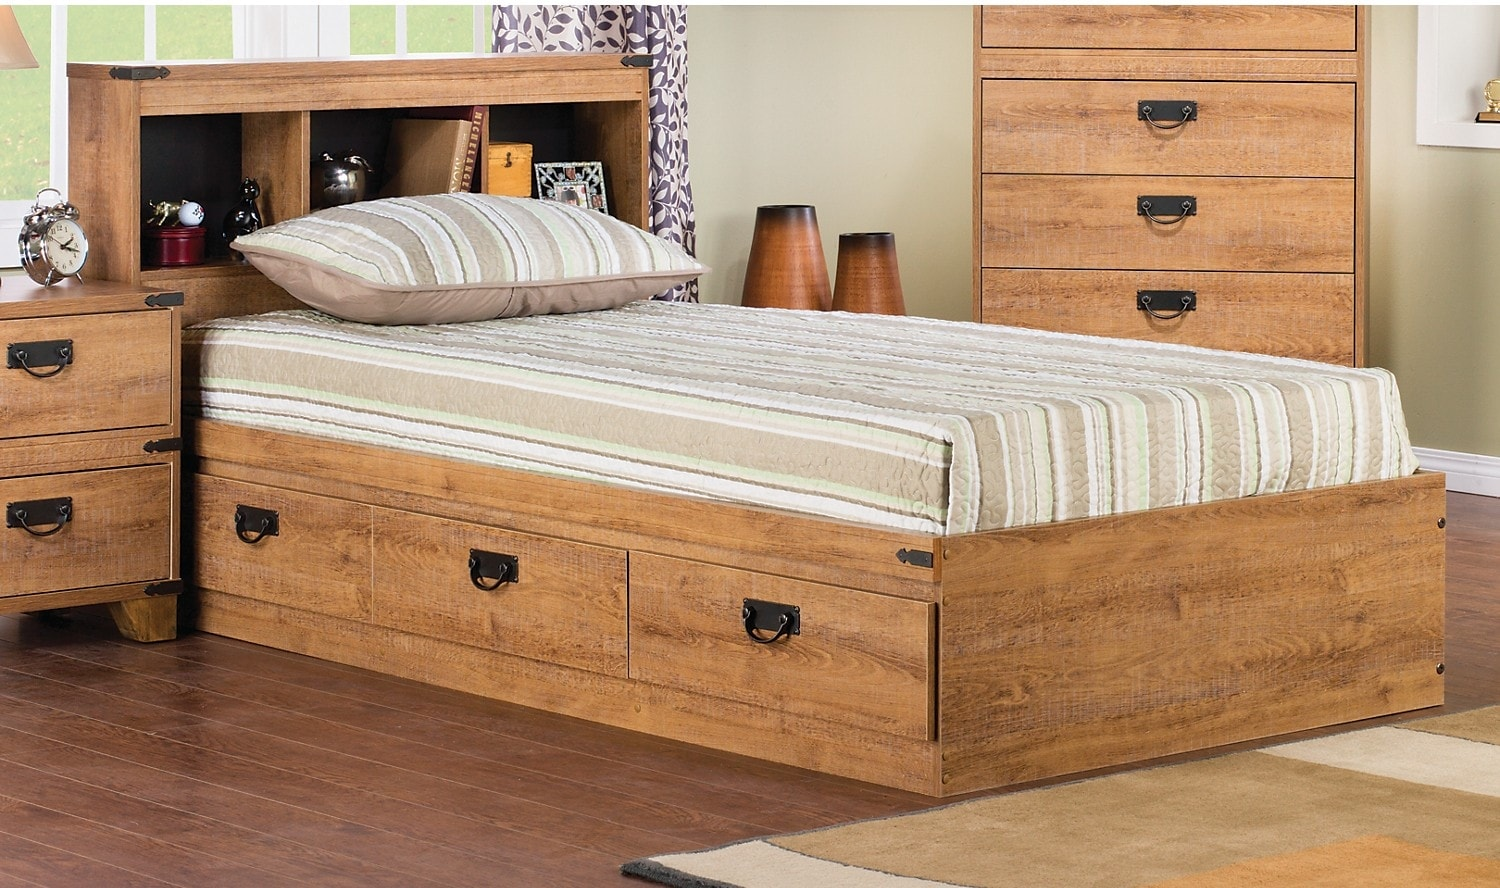 Driftwood Mates Bed with Headboard | The Brick